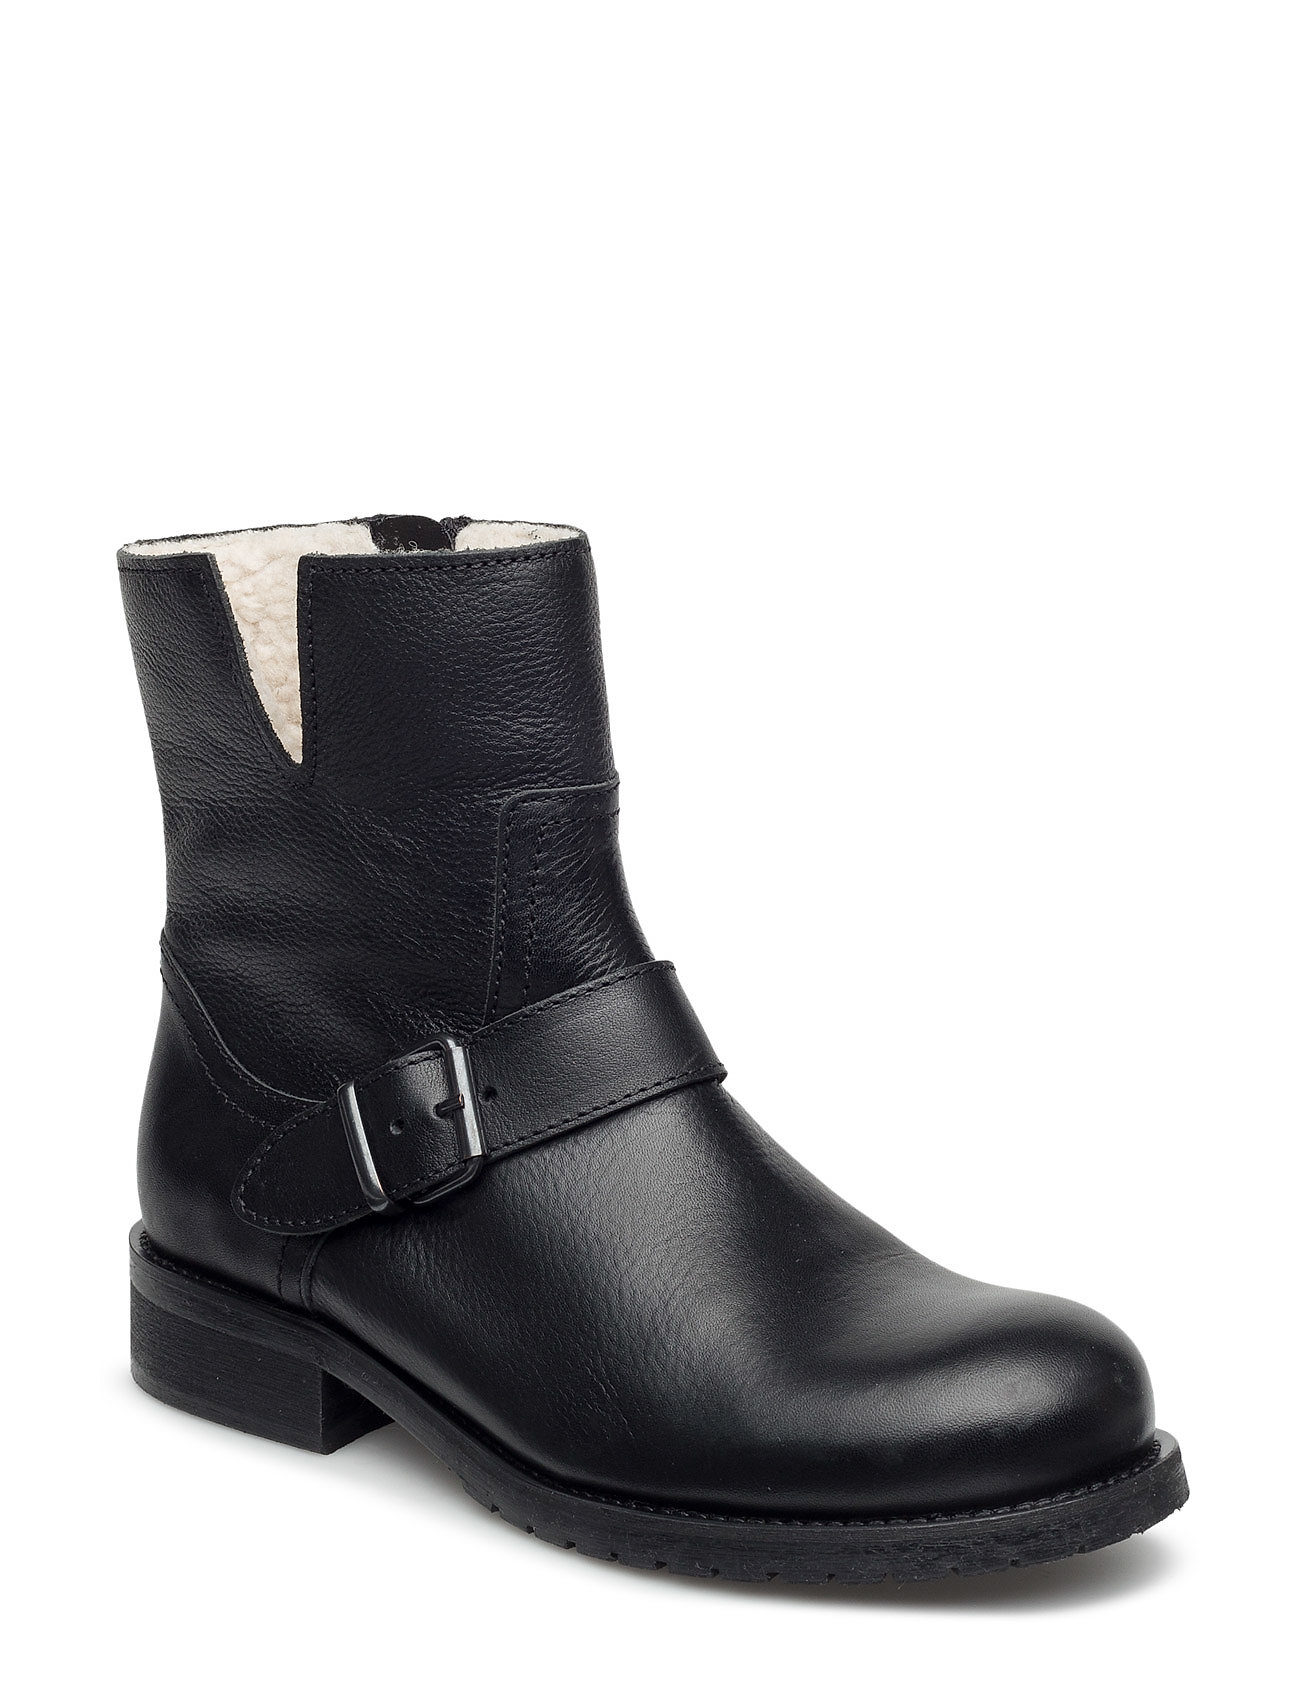 Image of Warm Lining 81923 Shoes Boots Ankle Boots Ankle Boot - Flat Sort Carla F (3406115341)